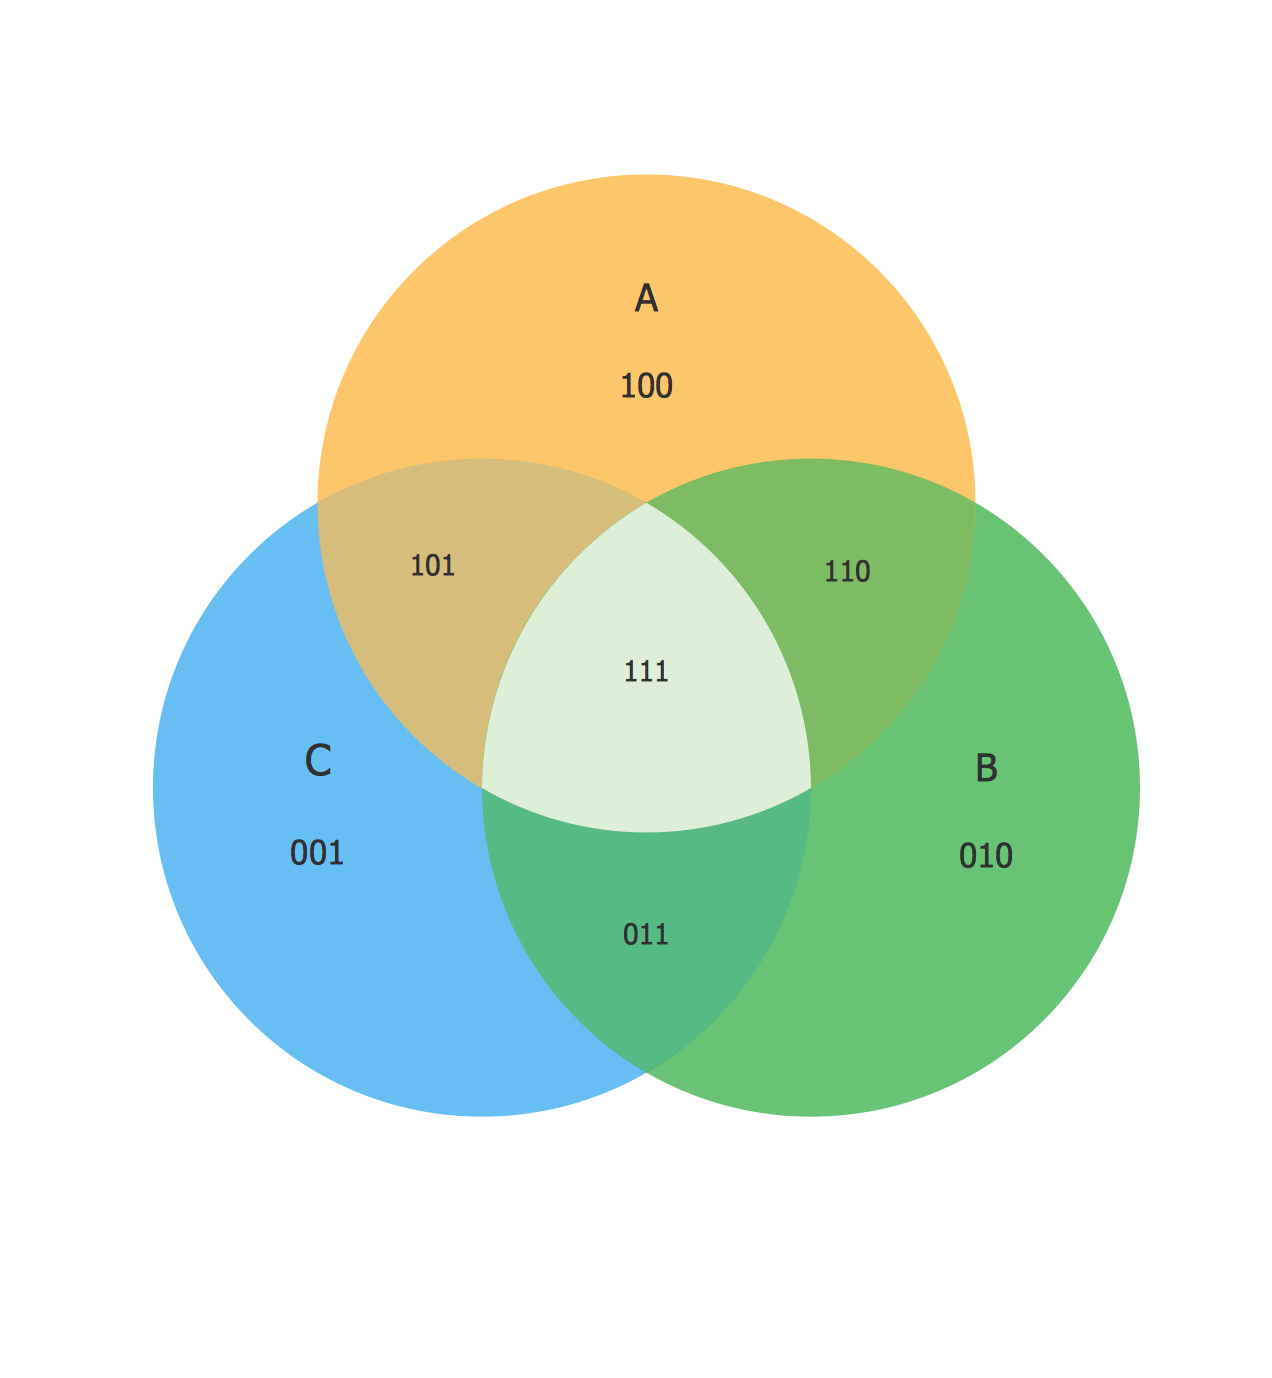 logic venn diagram generator venn diagram examples for logic problem solving venn diagram as a  logic problem solving venn diagram